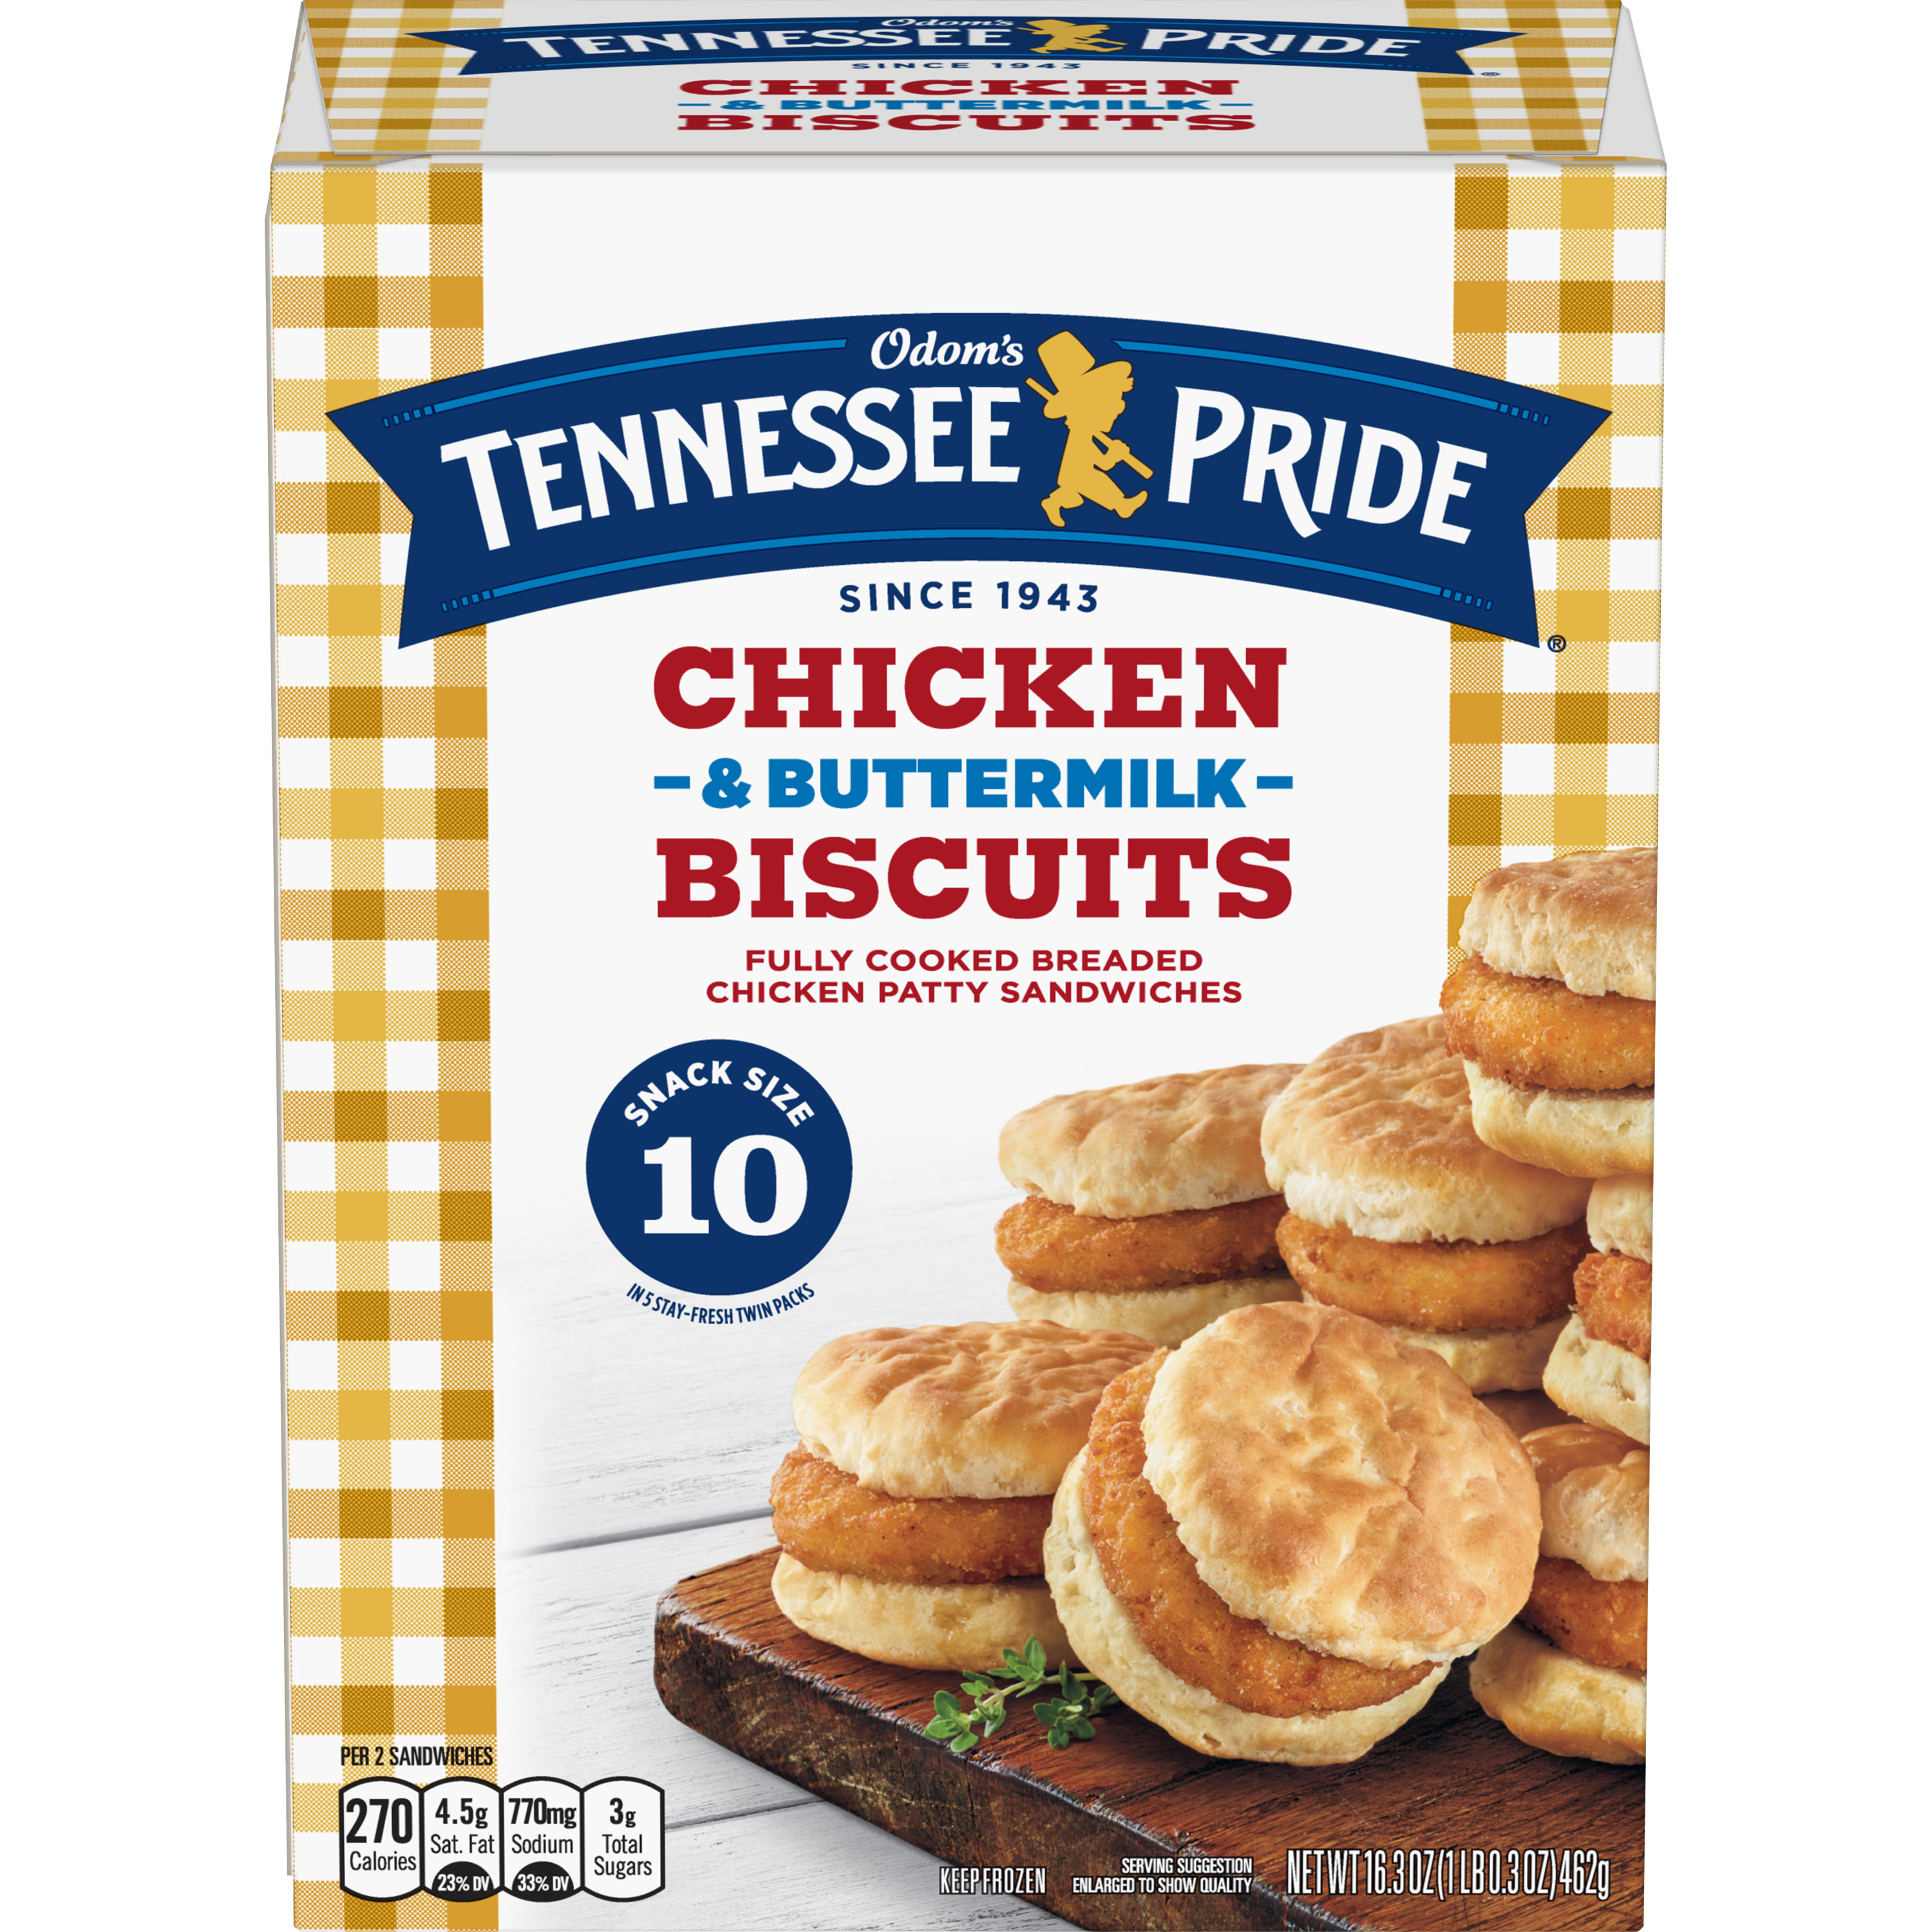 Odom's Tennessee Pride Chicken & Buttermilk Biscuits, 10 Count